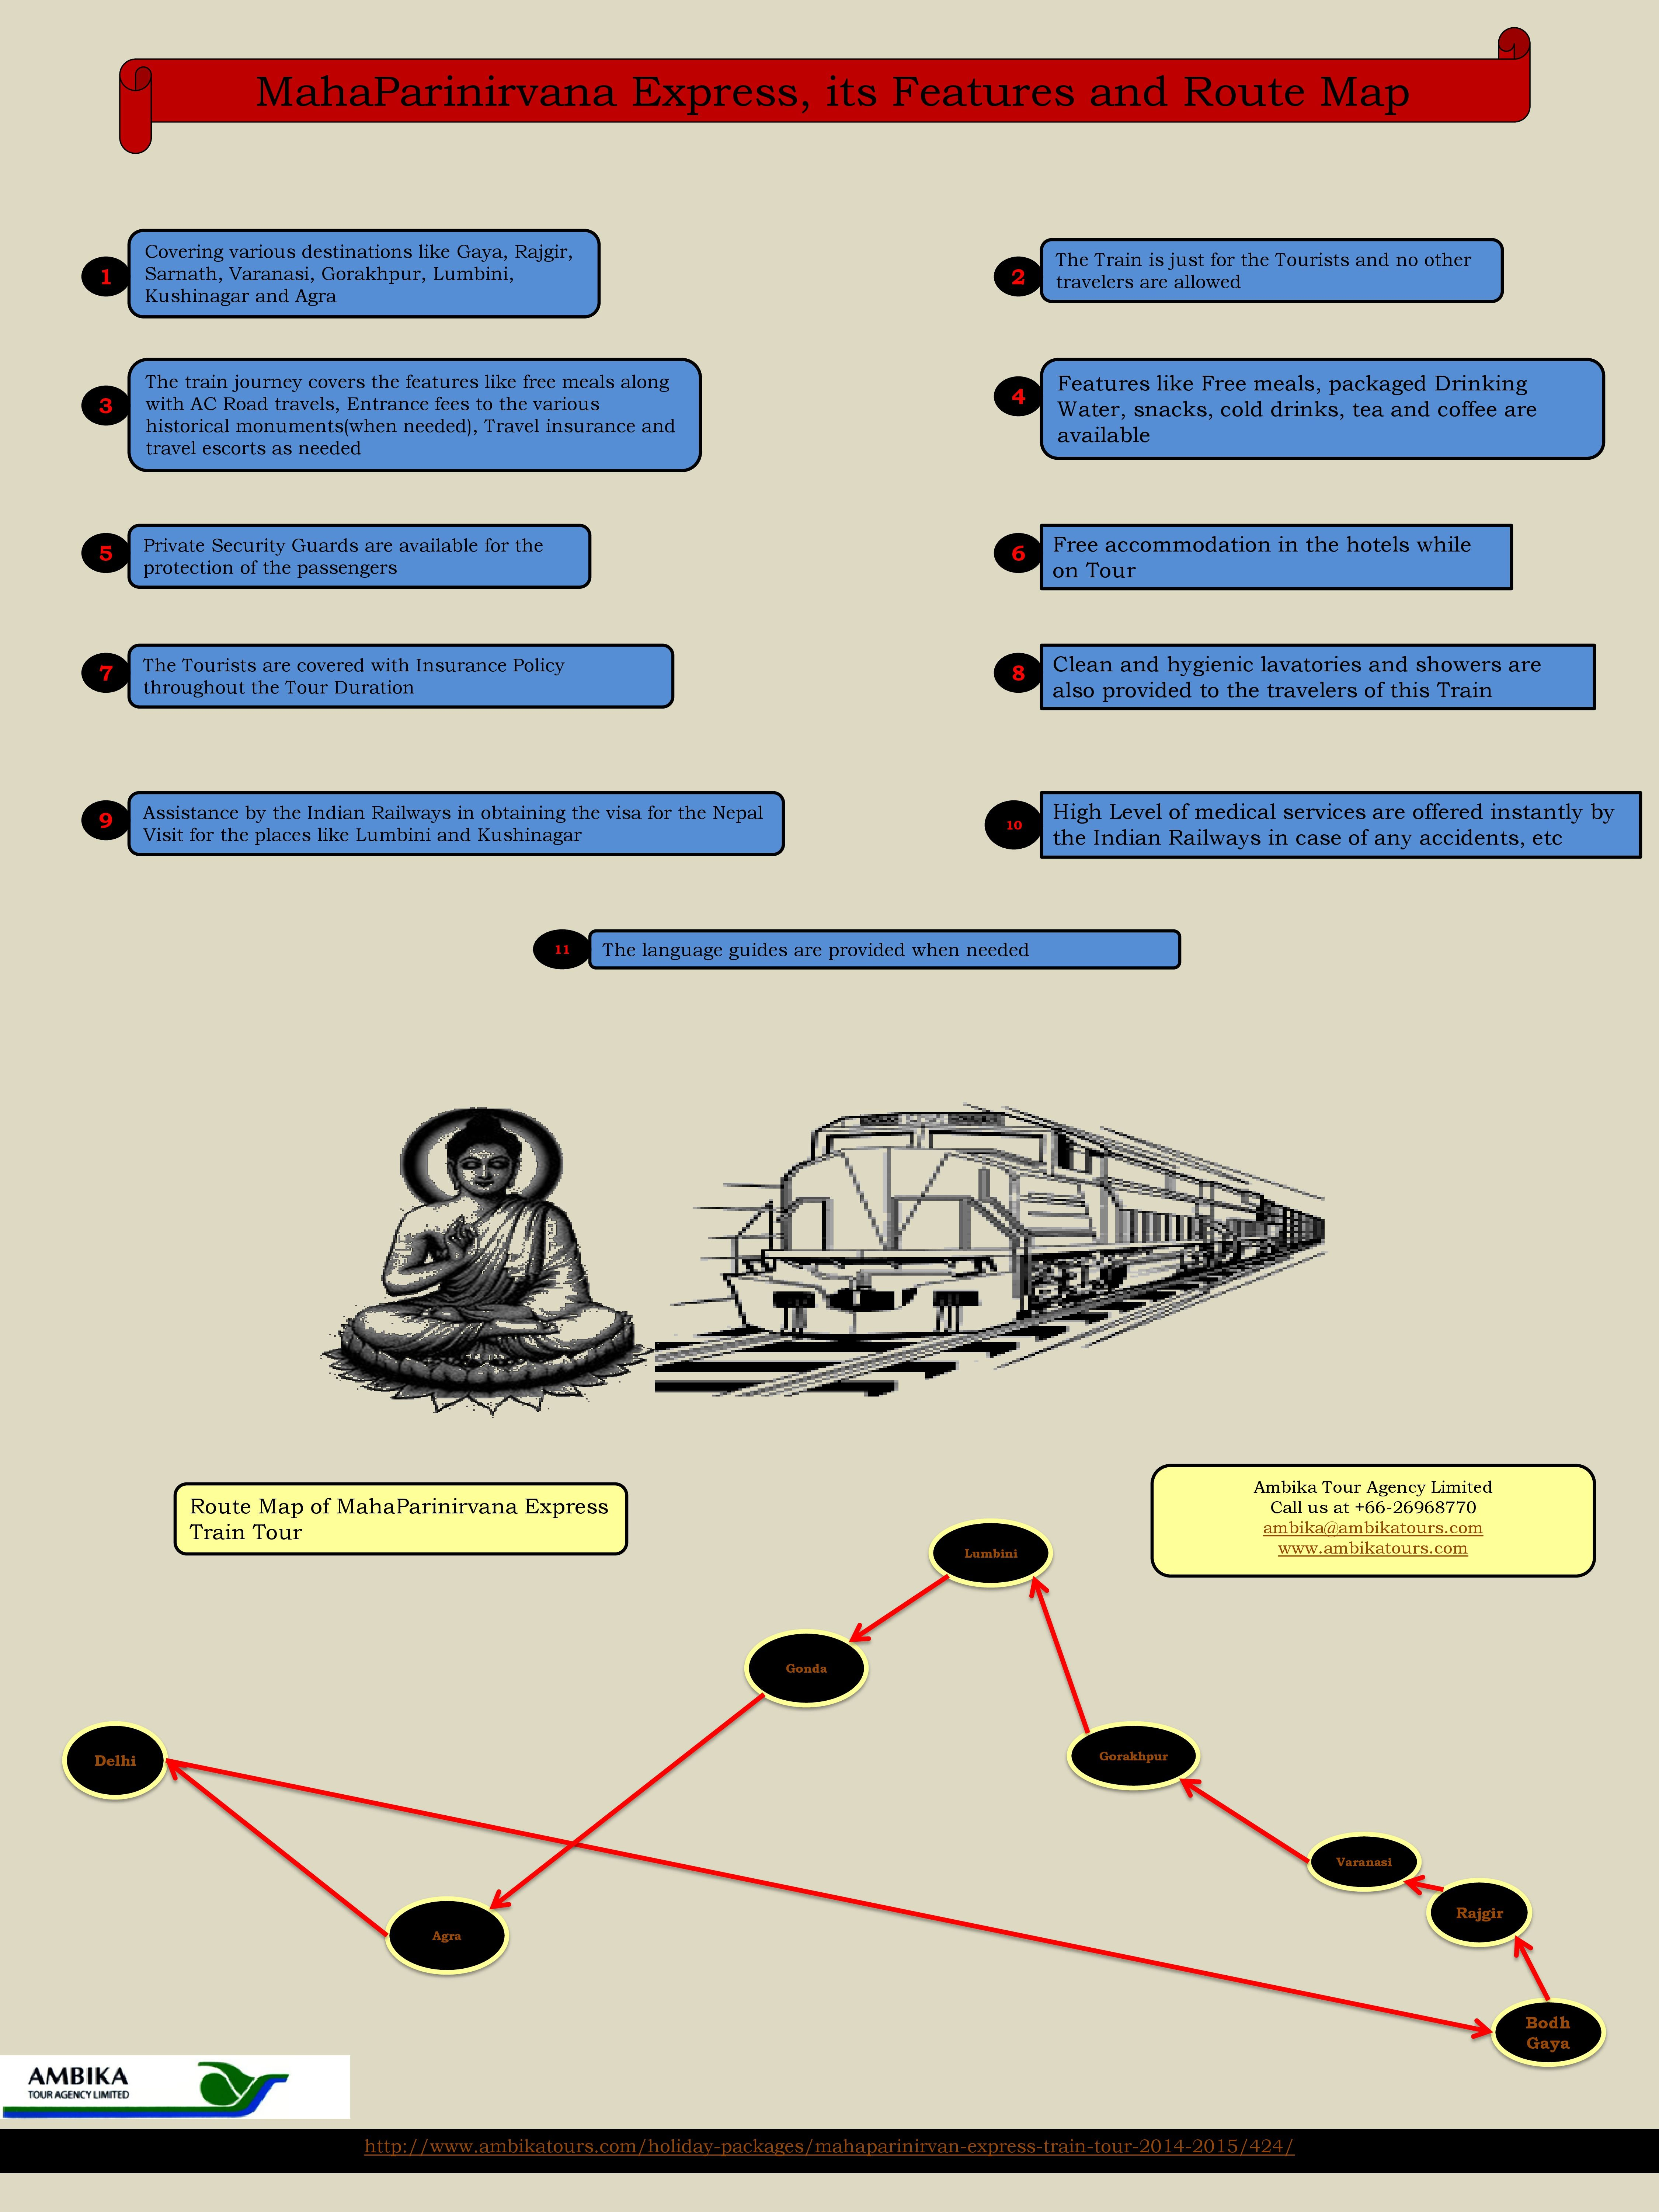 The concerned Info graphic is related to the \'MahaParinirvana ...